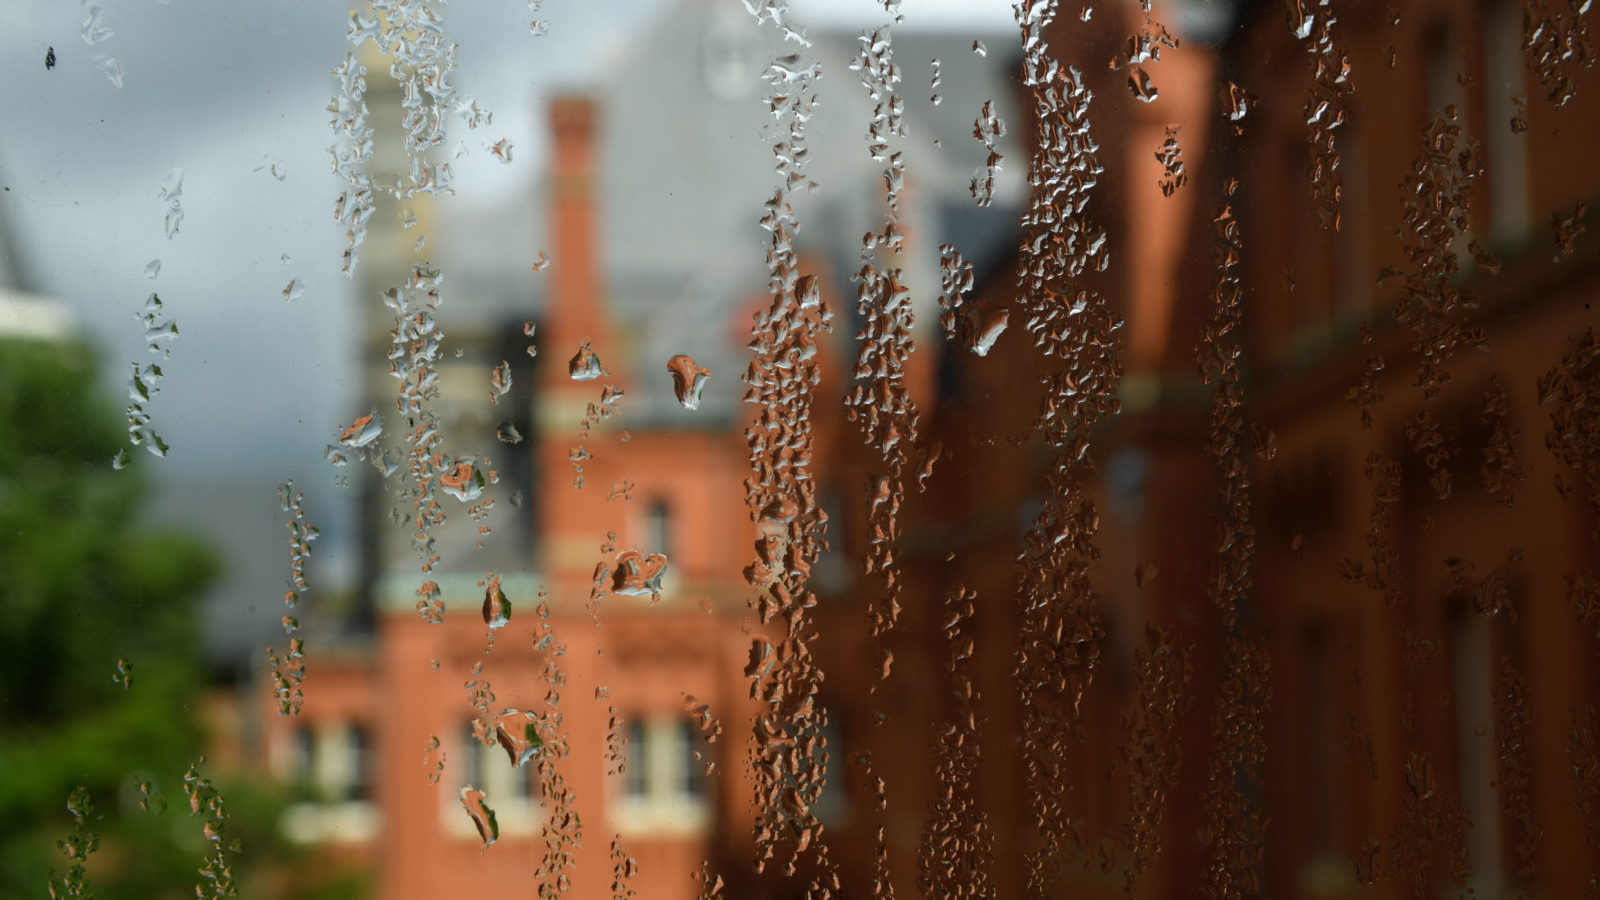 Rain trickles down a window with campus in the background